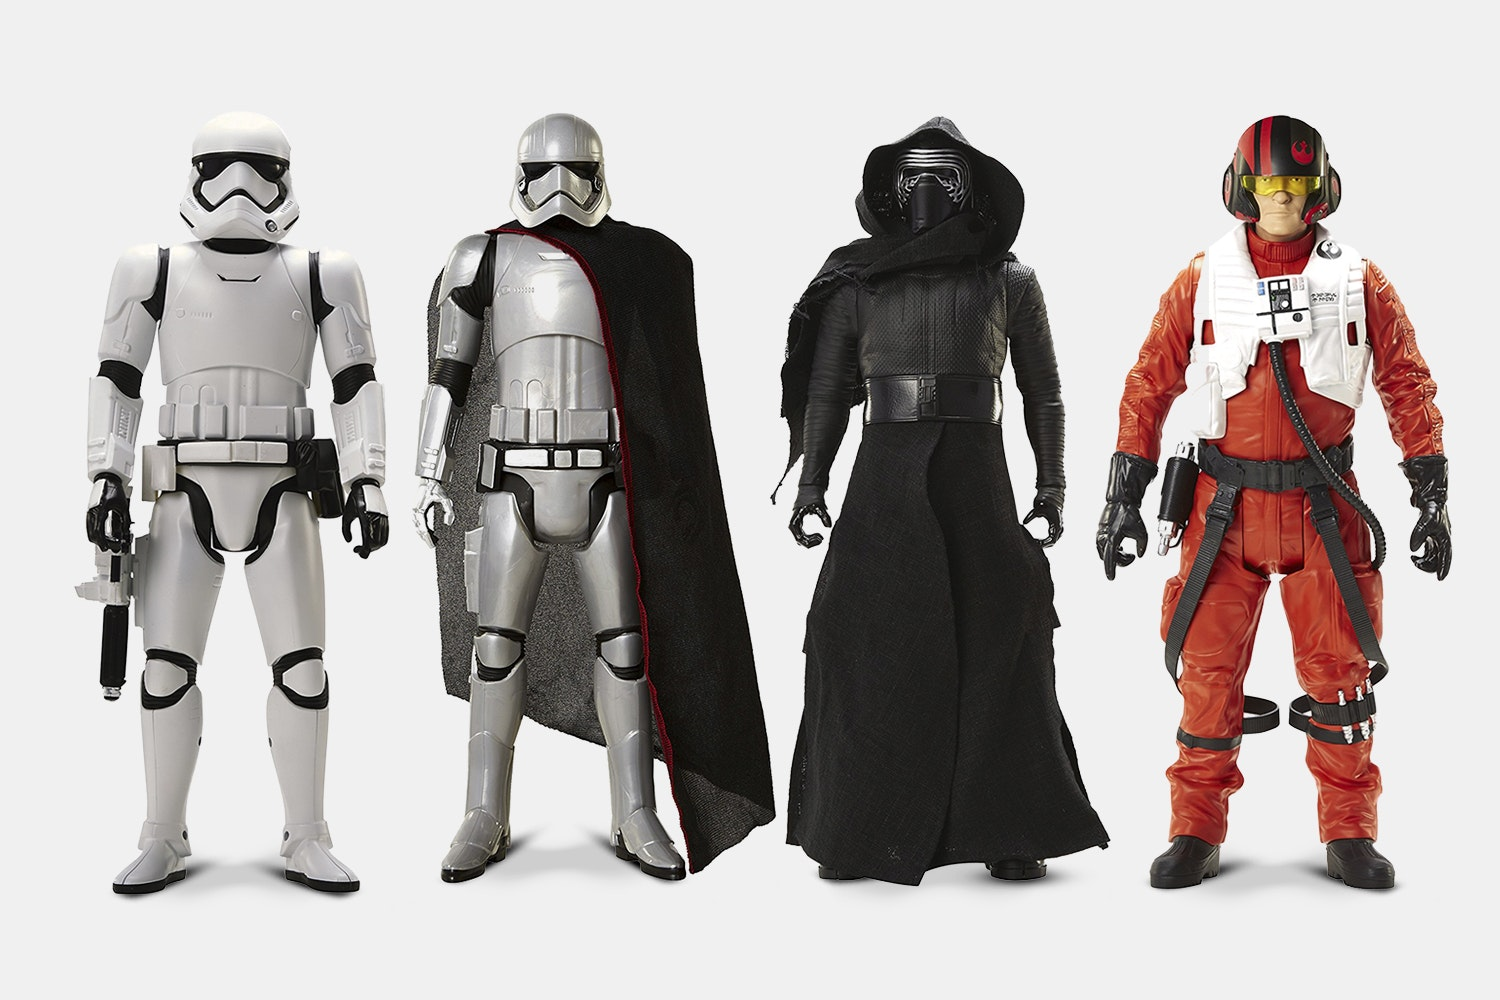 Star Wars Episode VII 18-Inch Figures (4-Pack)